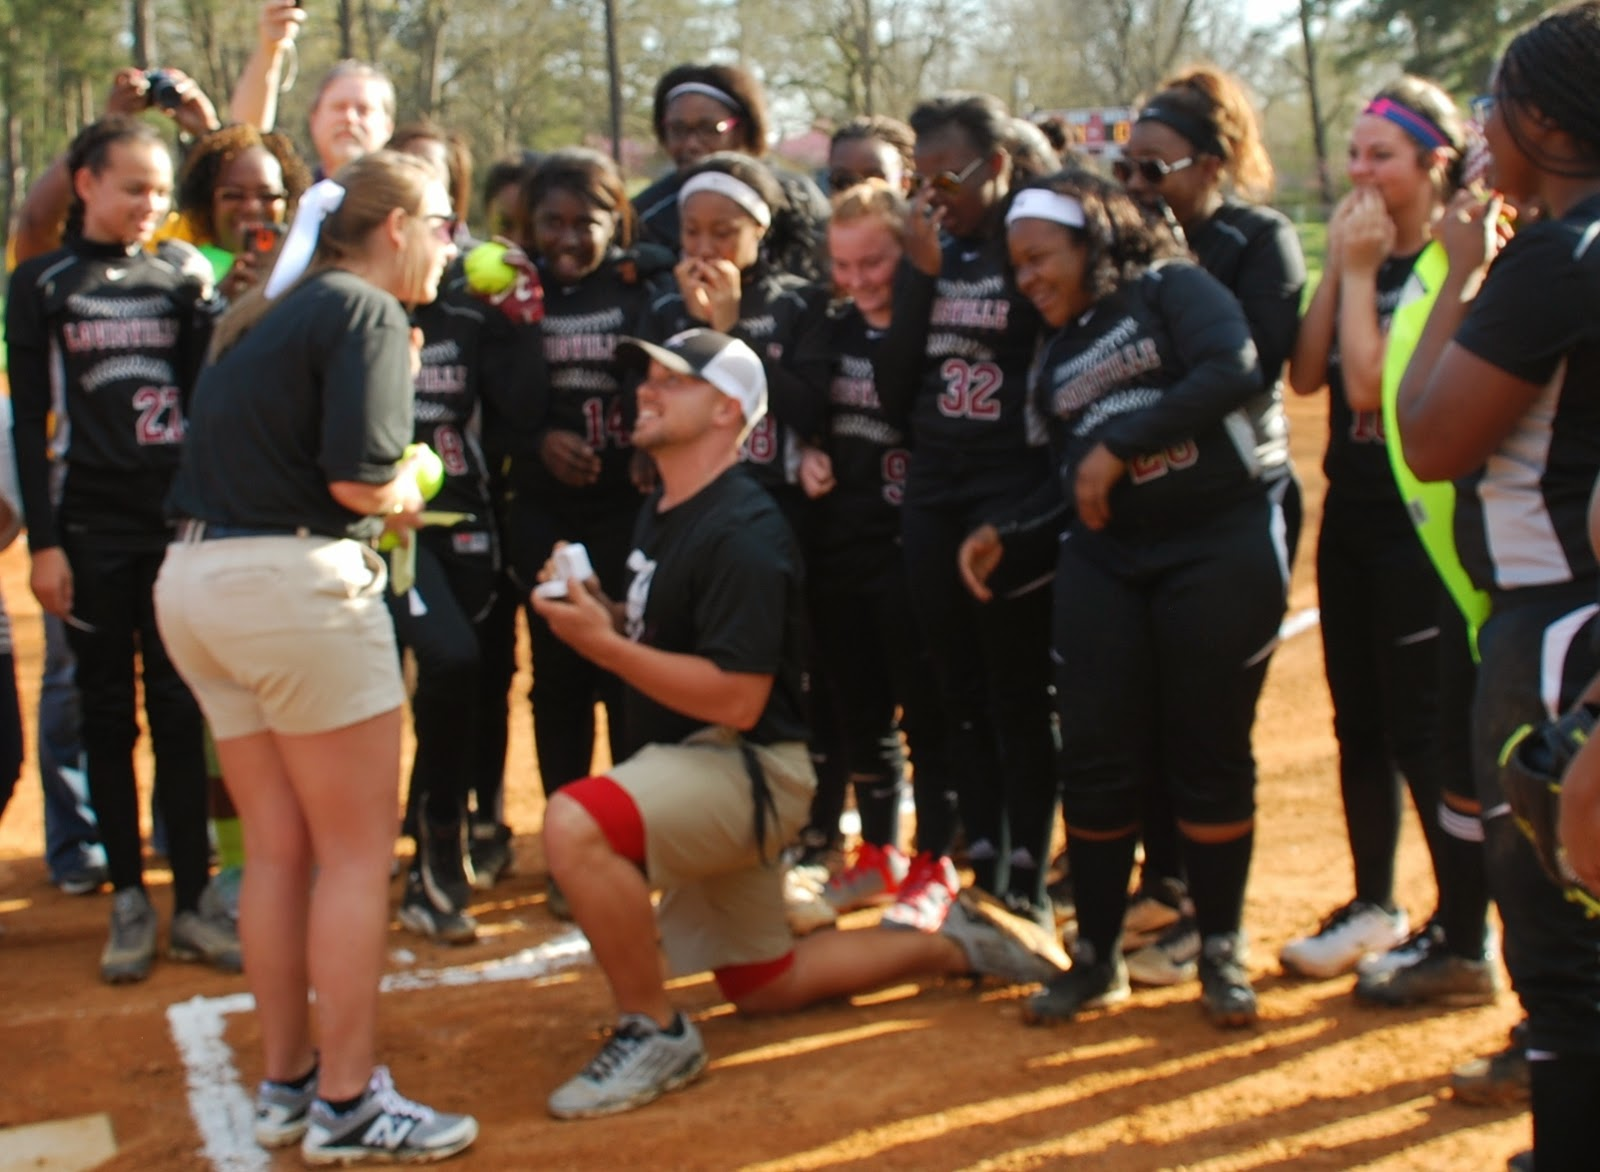 Beautiful Coach Proposes Marriage To Coach On Louisville Softball Field!